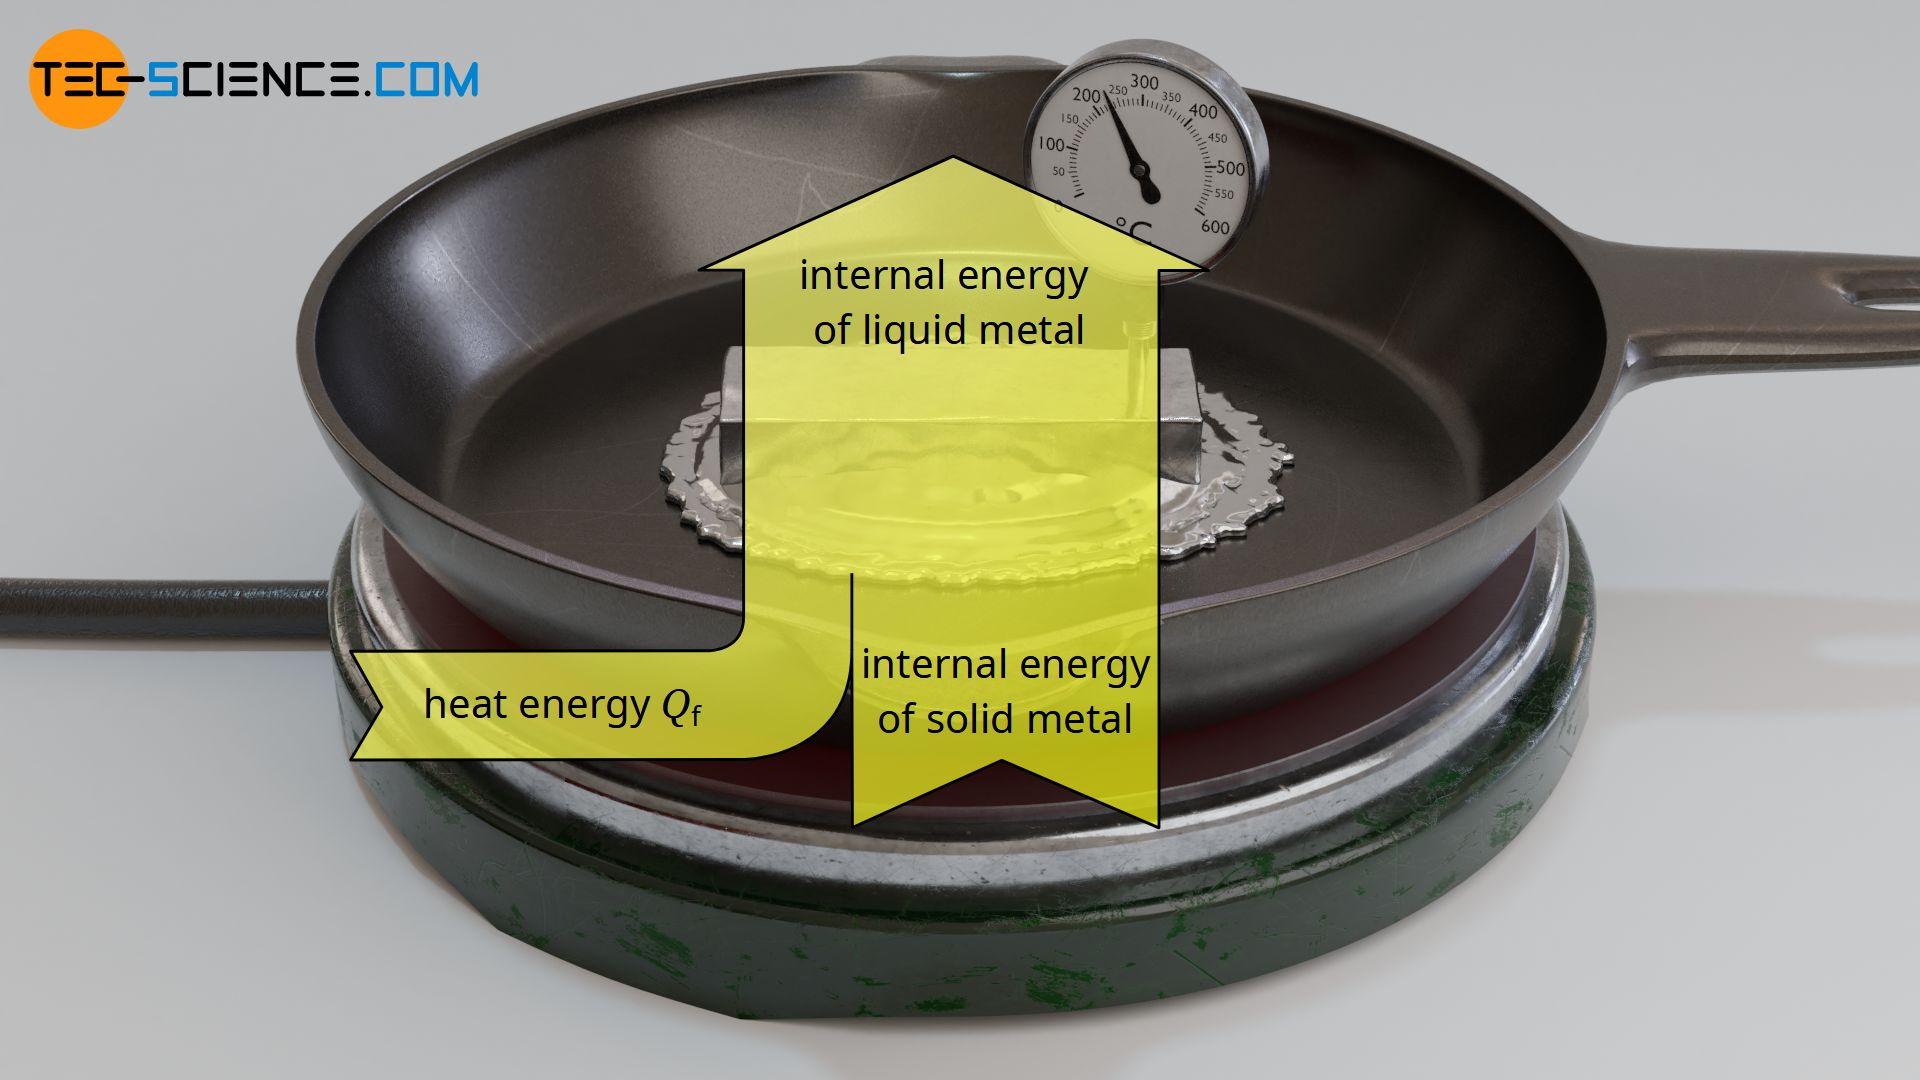 Change in internal energy due to input of heat of fusion during melting